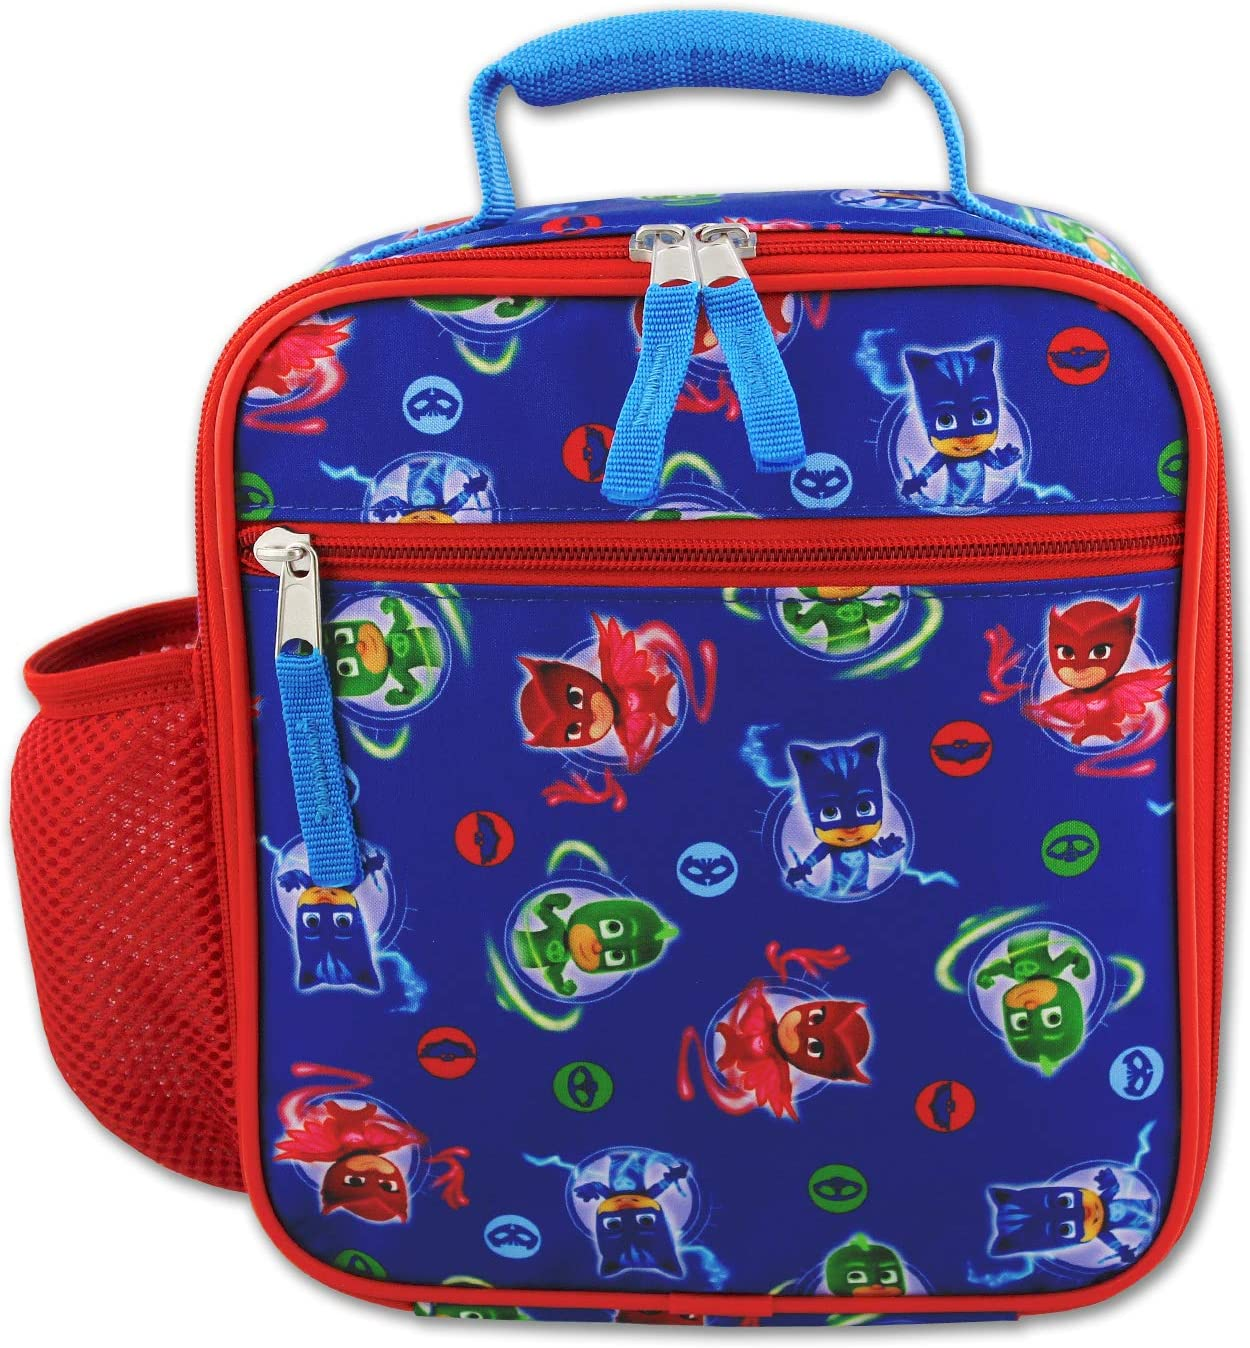 PJ Masks Boys Girls Soft Insulated School Lunch Box (One Size, Blue/Red)